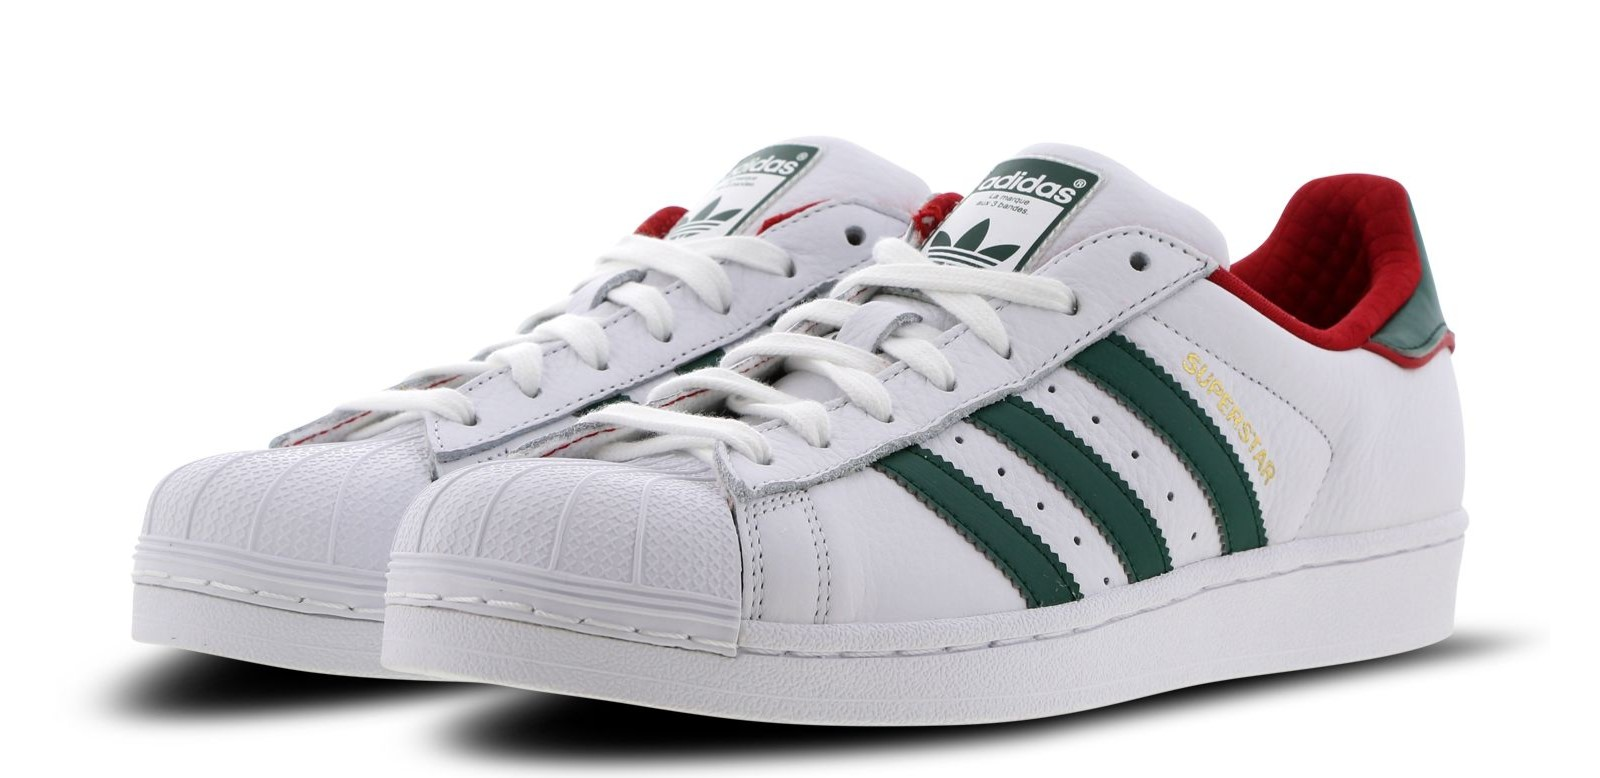 Adidas Shoes X Locker Colour Bi Superstar 2 Xtz0qhqwf Foot 4vfTaw